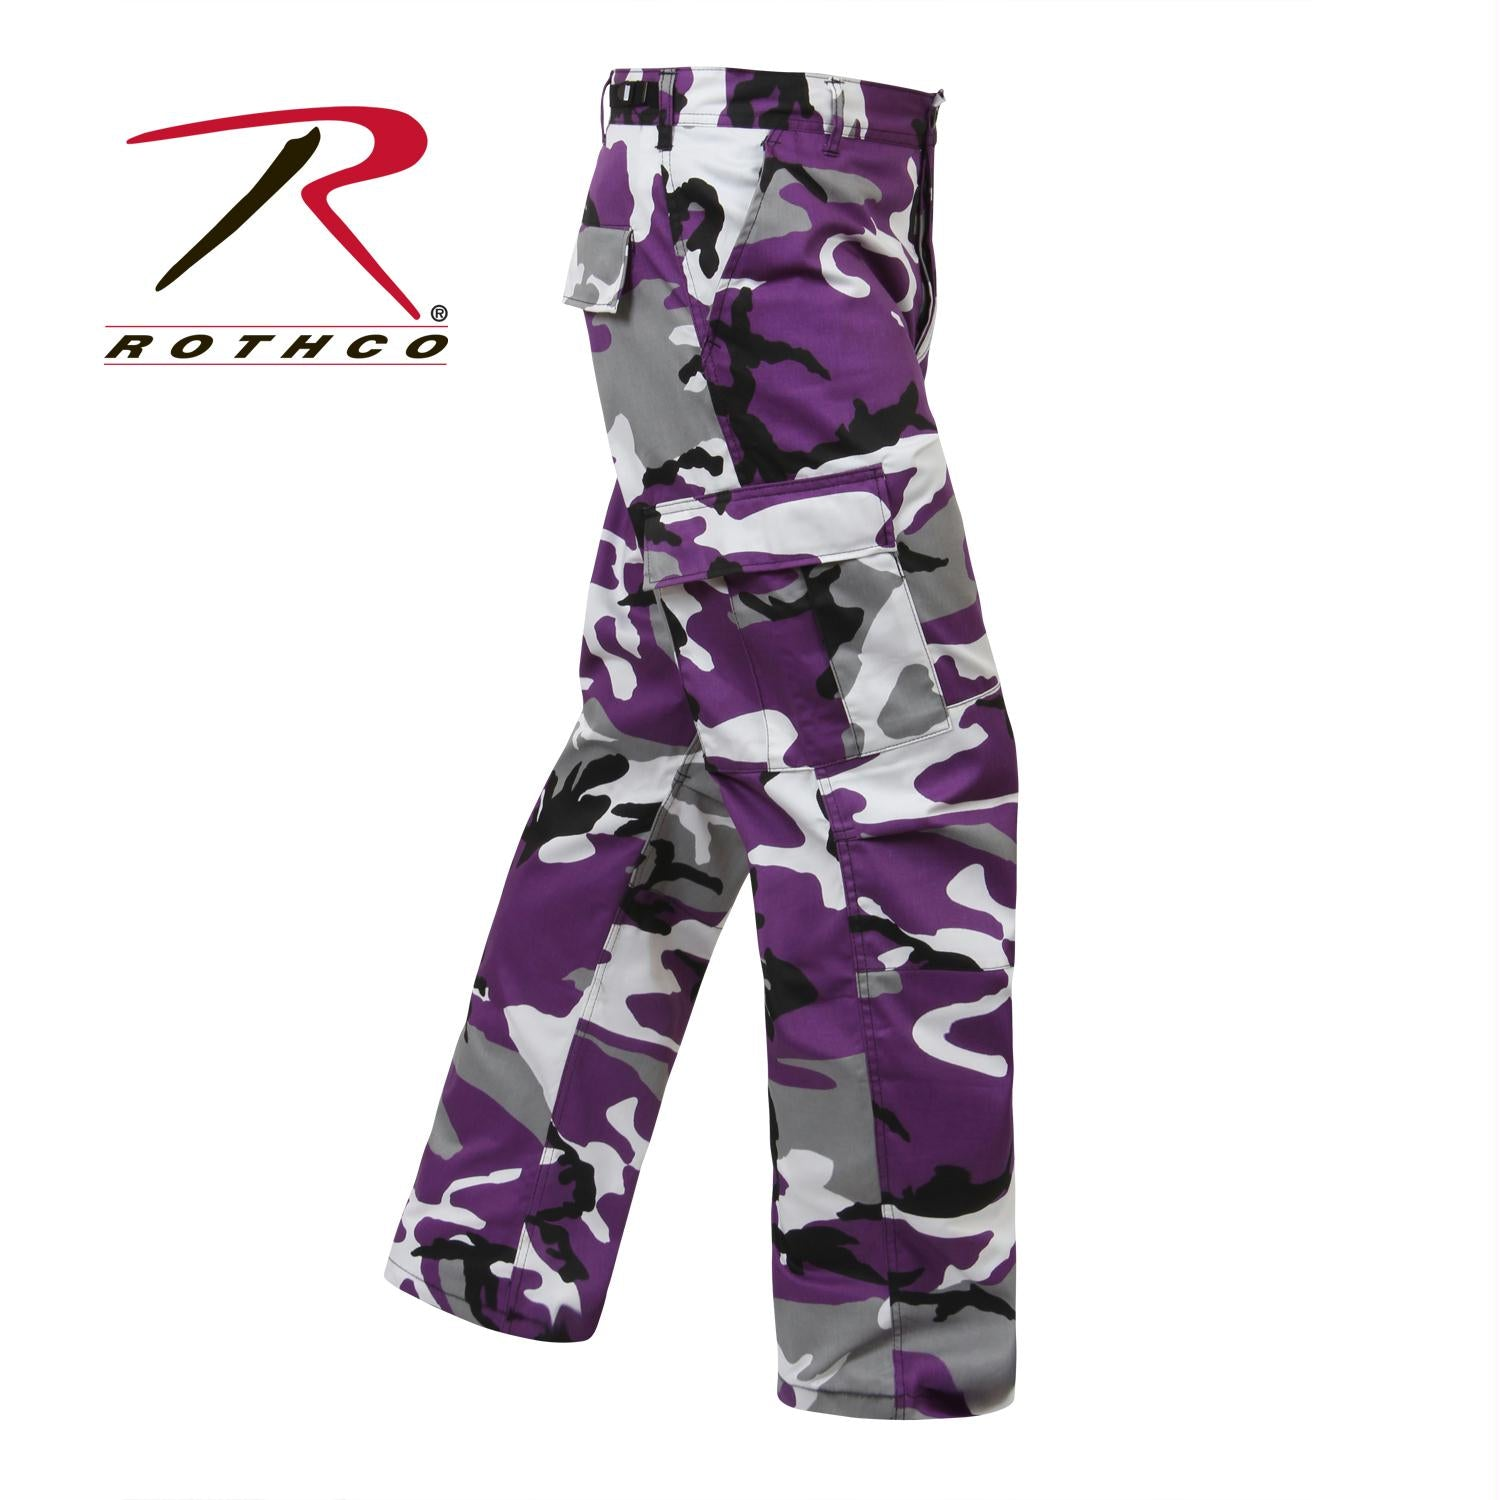 Rothco Color Camo Tactical BDU Pant - Ultra Violet Camo / 4XL